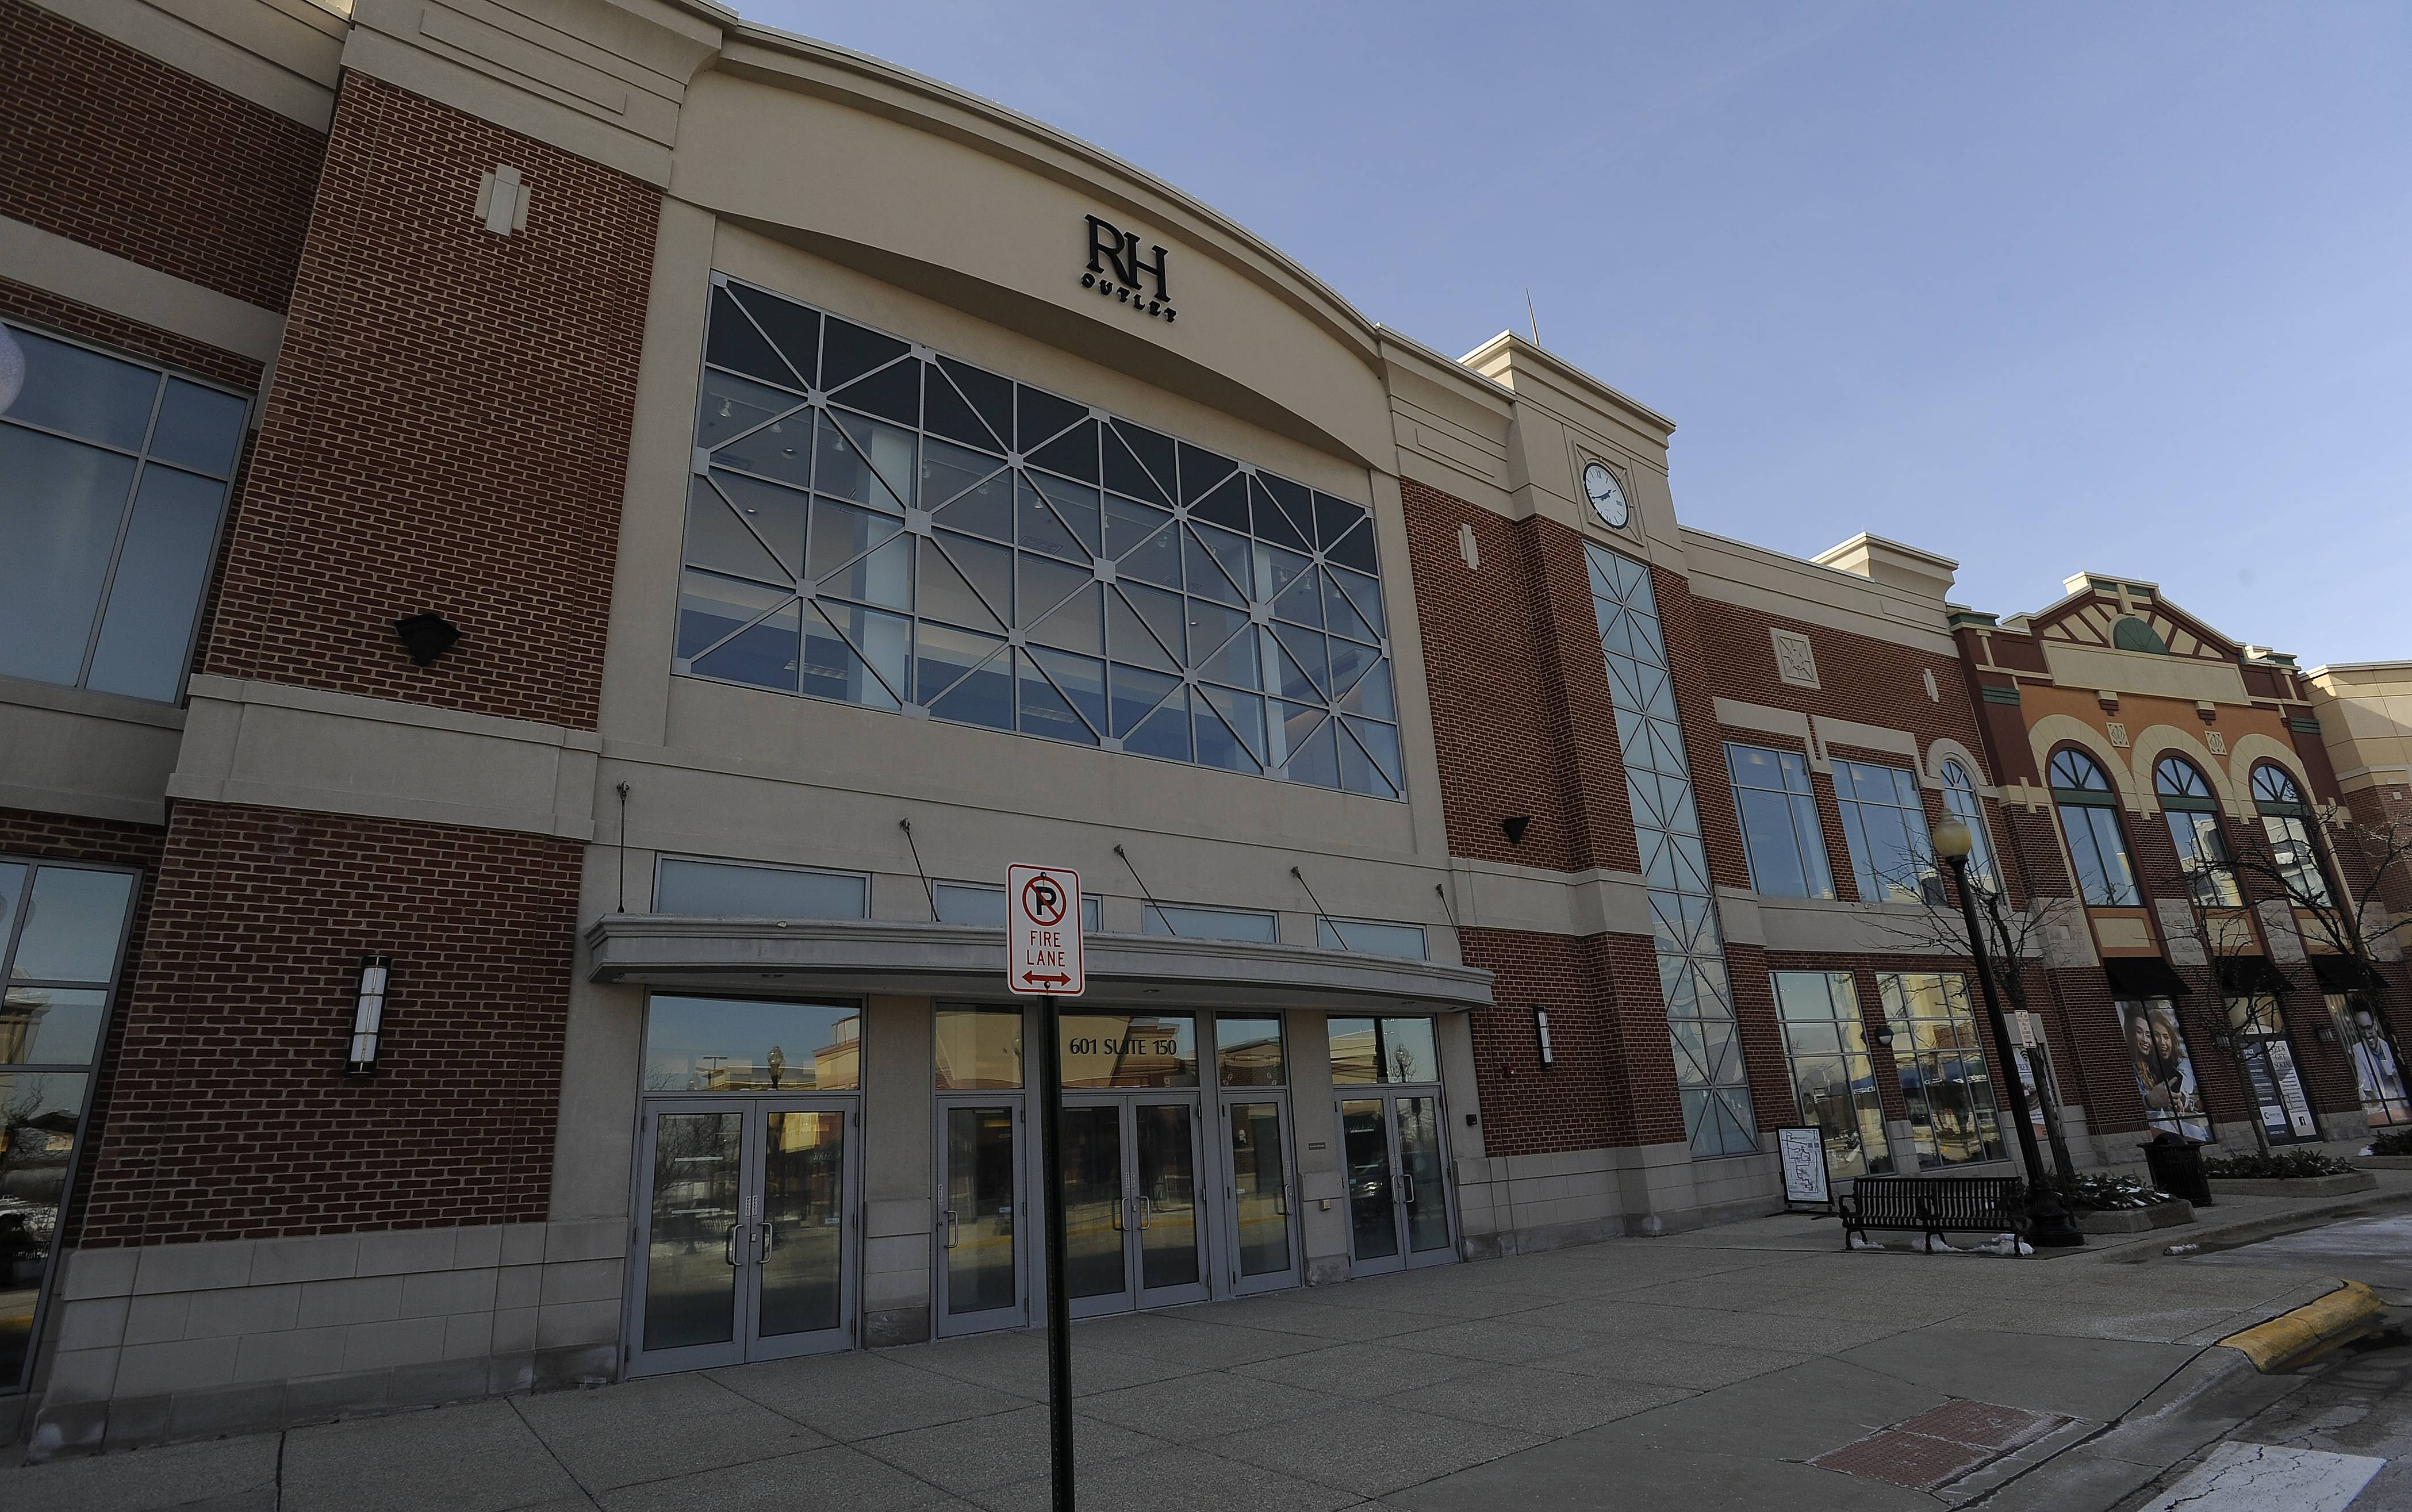 Restoration Hardware Outlet recently moved into the former Carson's in the Streets of Woodfield shopping center in Schaumburg.